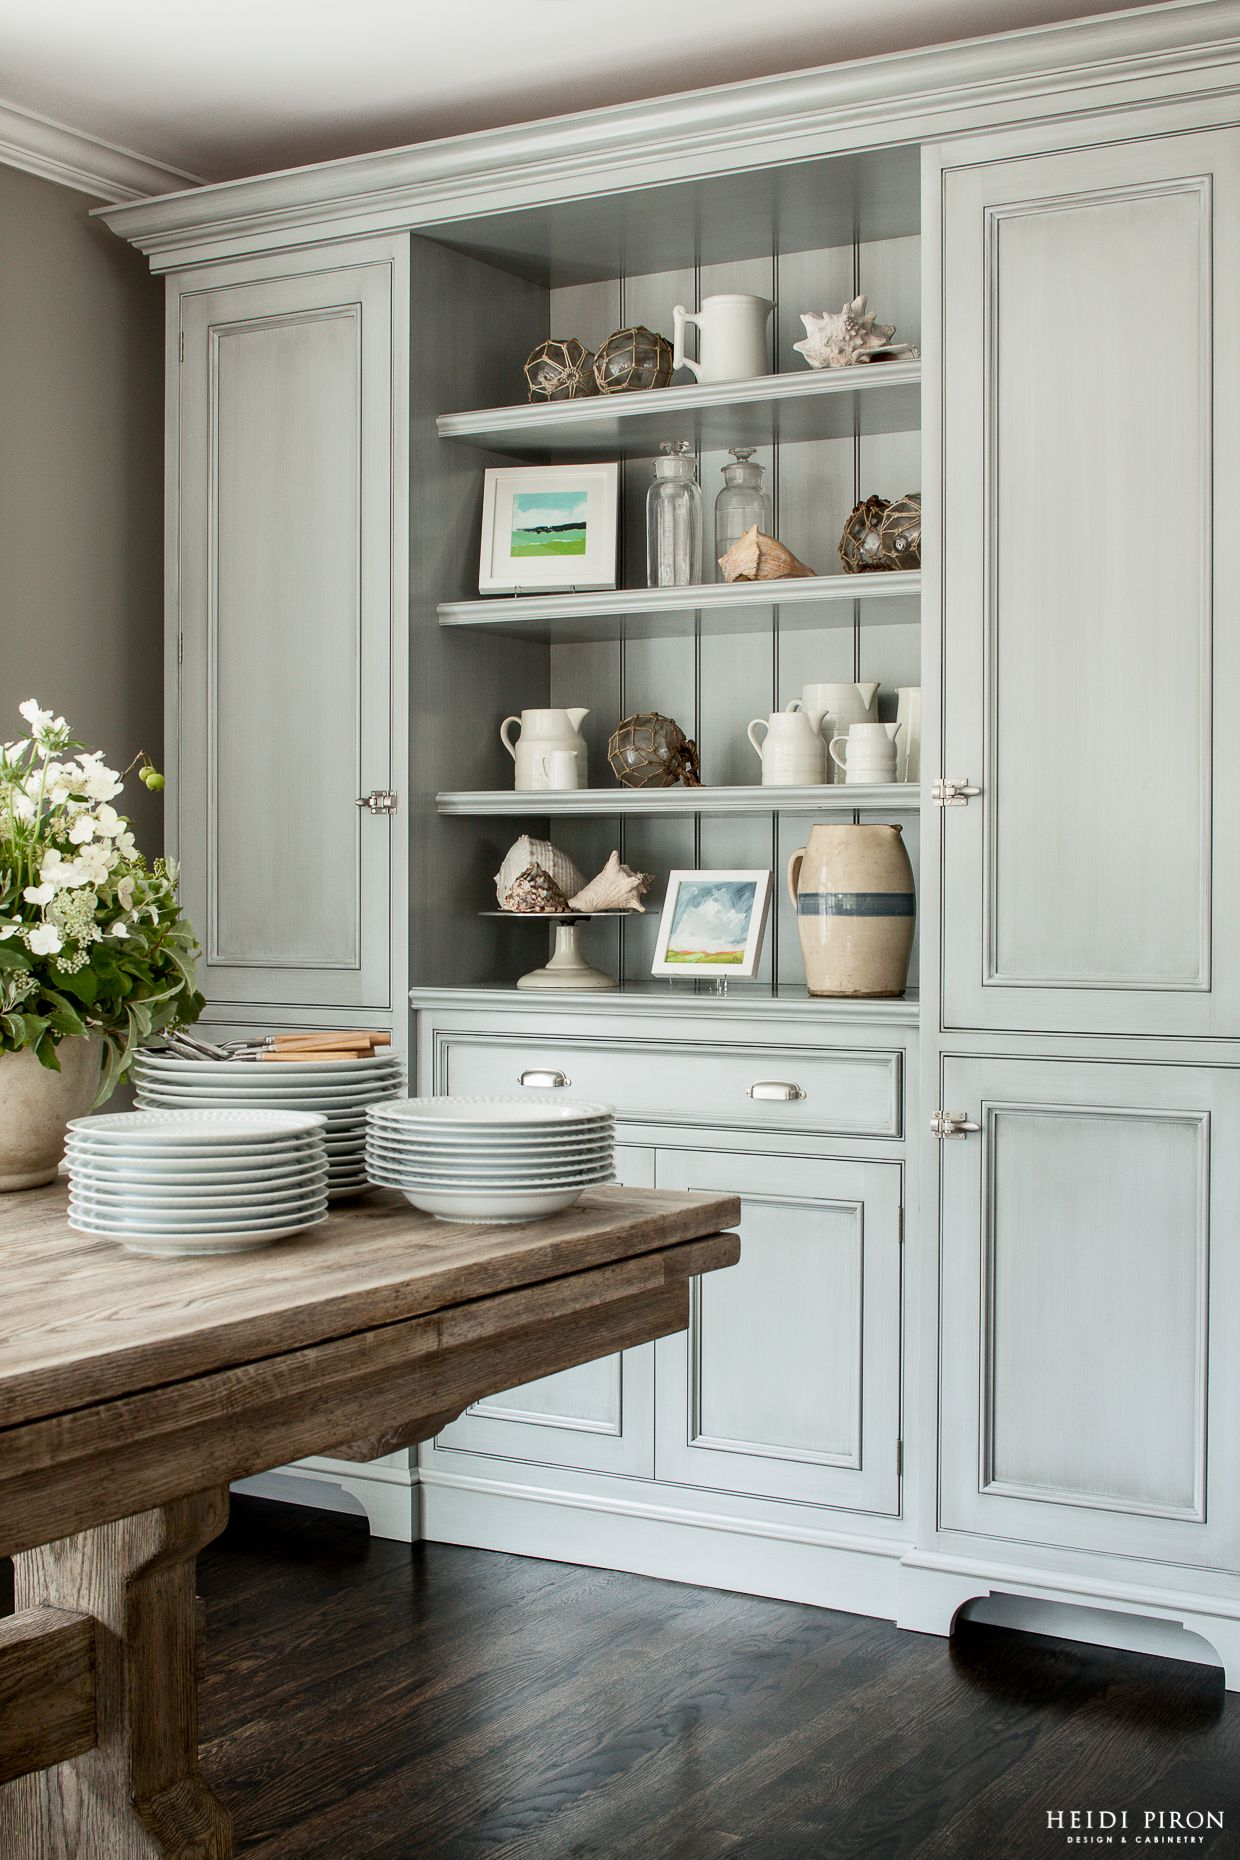 heidi piron design and cabinetry - gorgeous built-in kitchen dresser